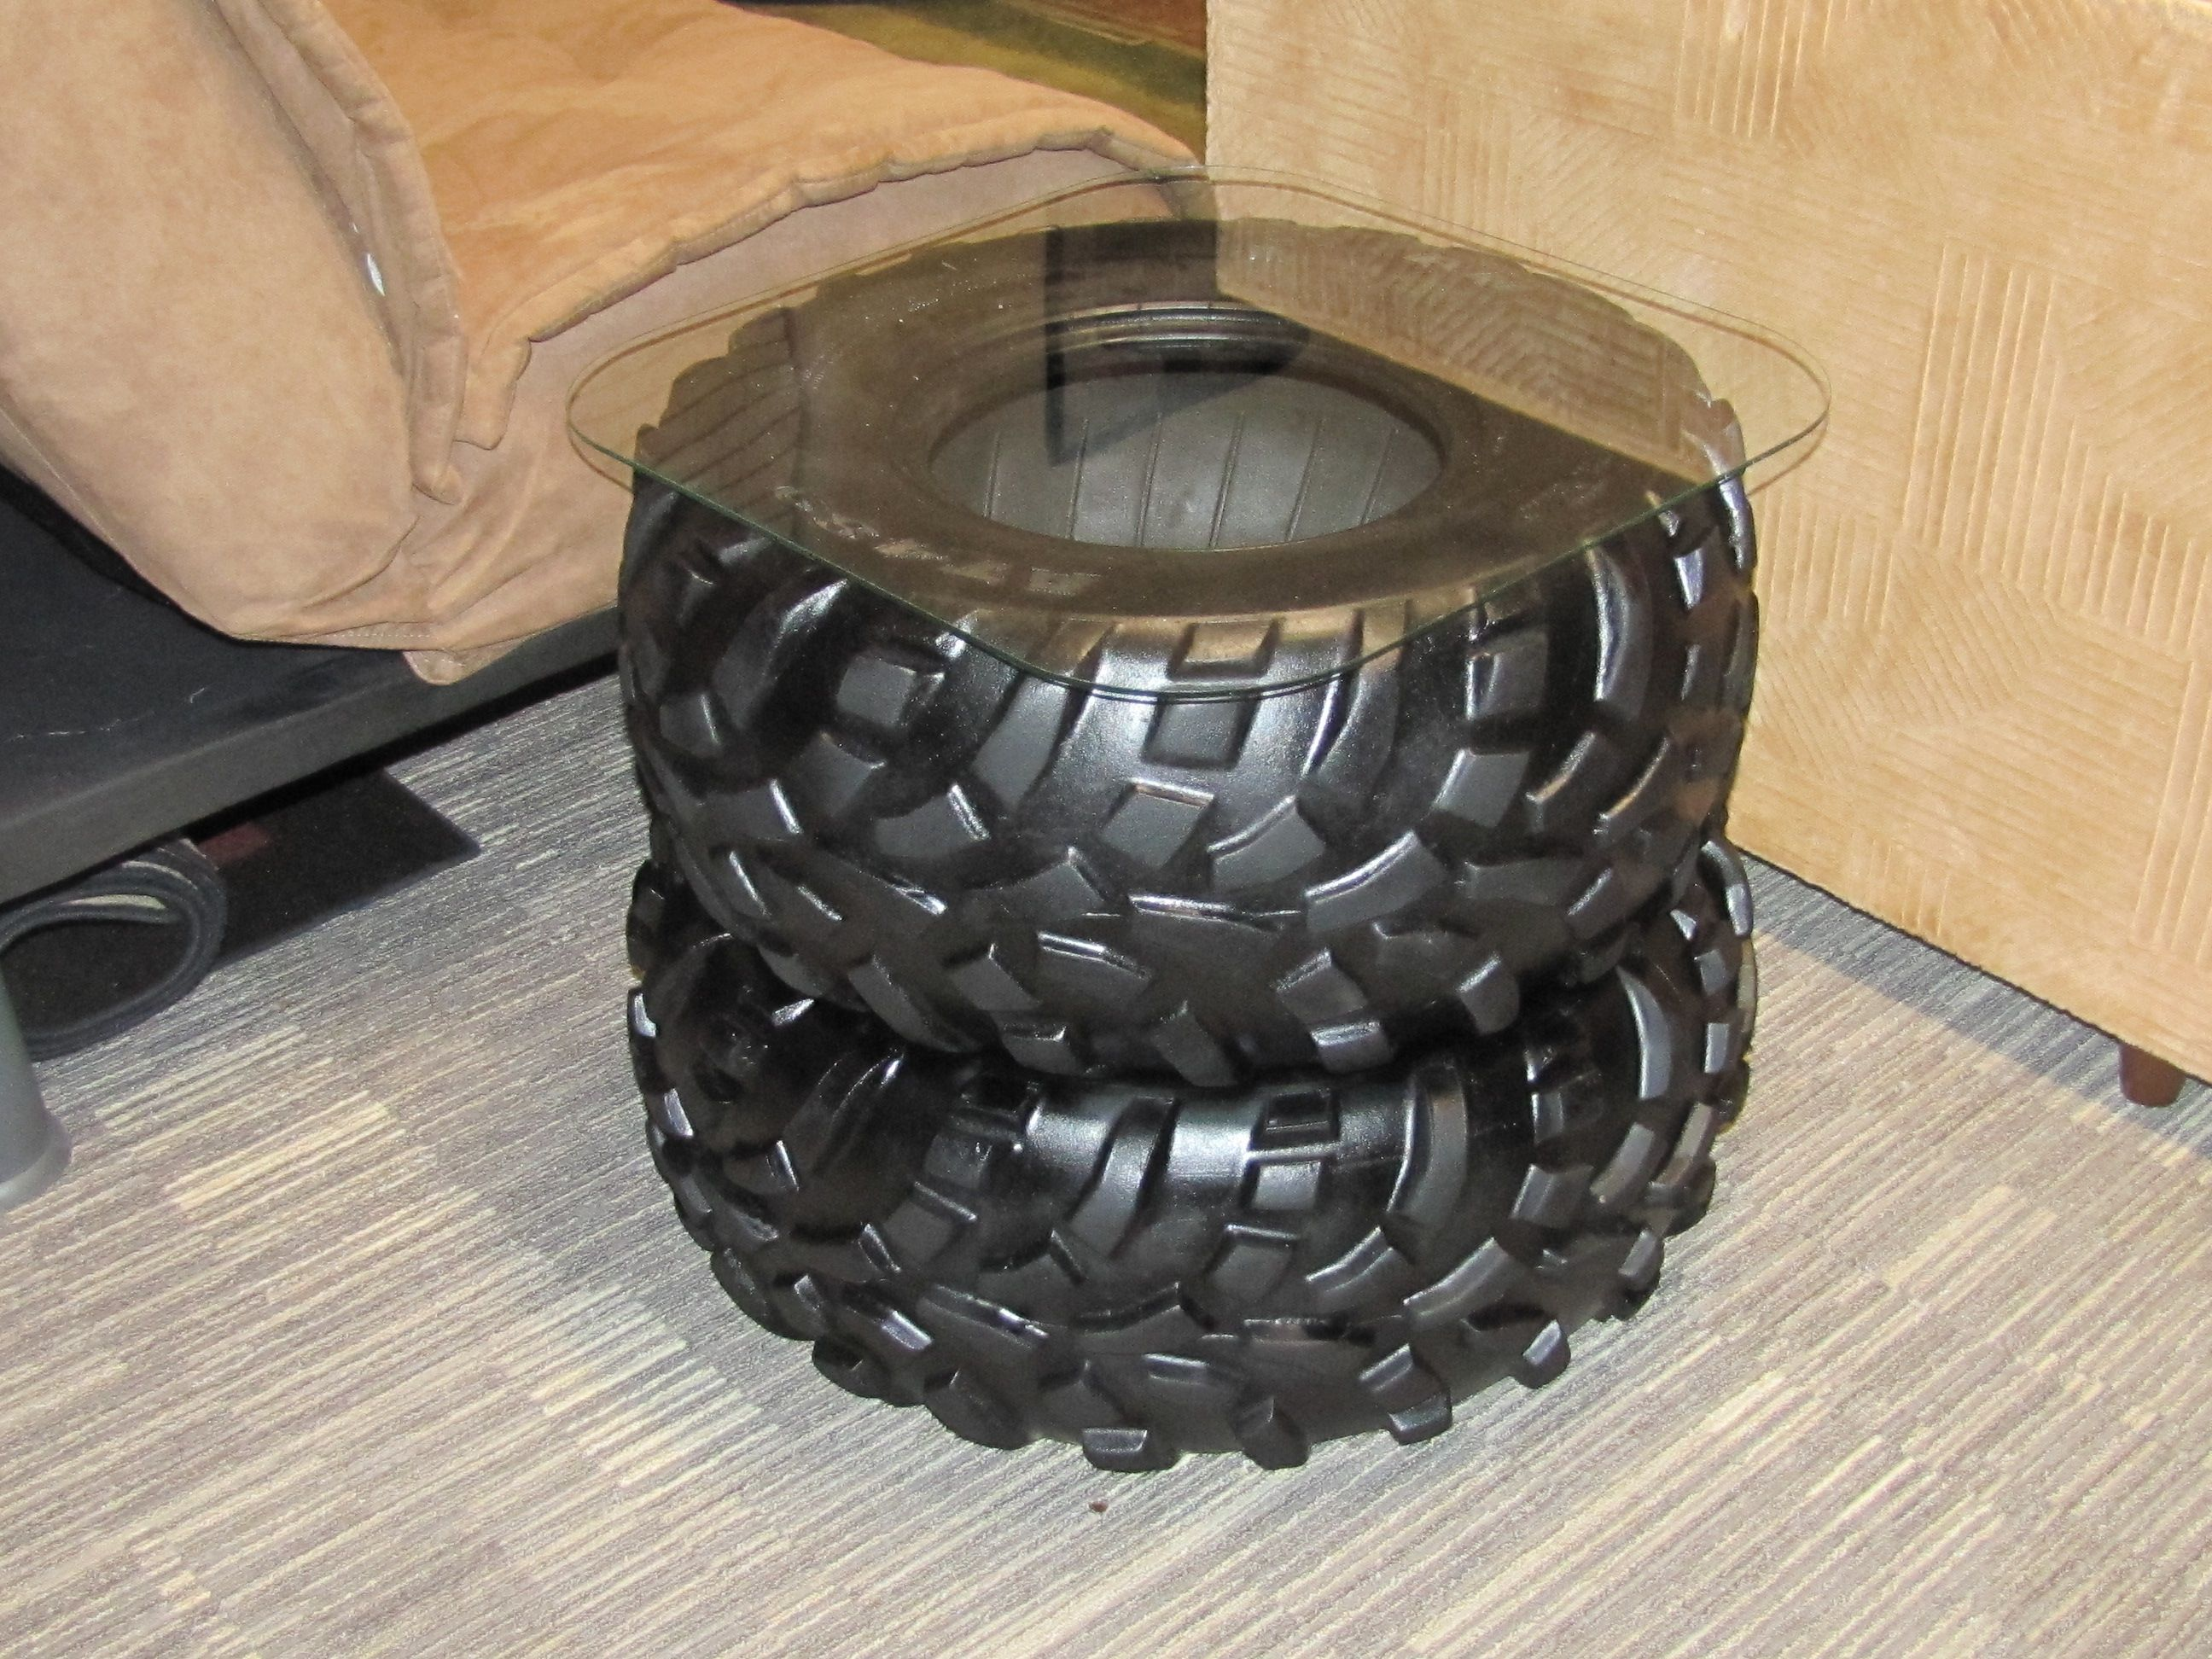 Man Cave End Table Made Out Of 2 Four Wheeler Tires And A Glass Top.